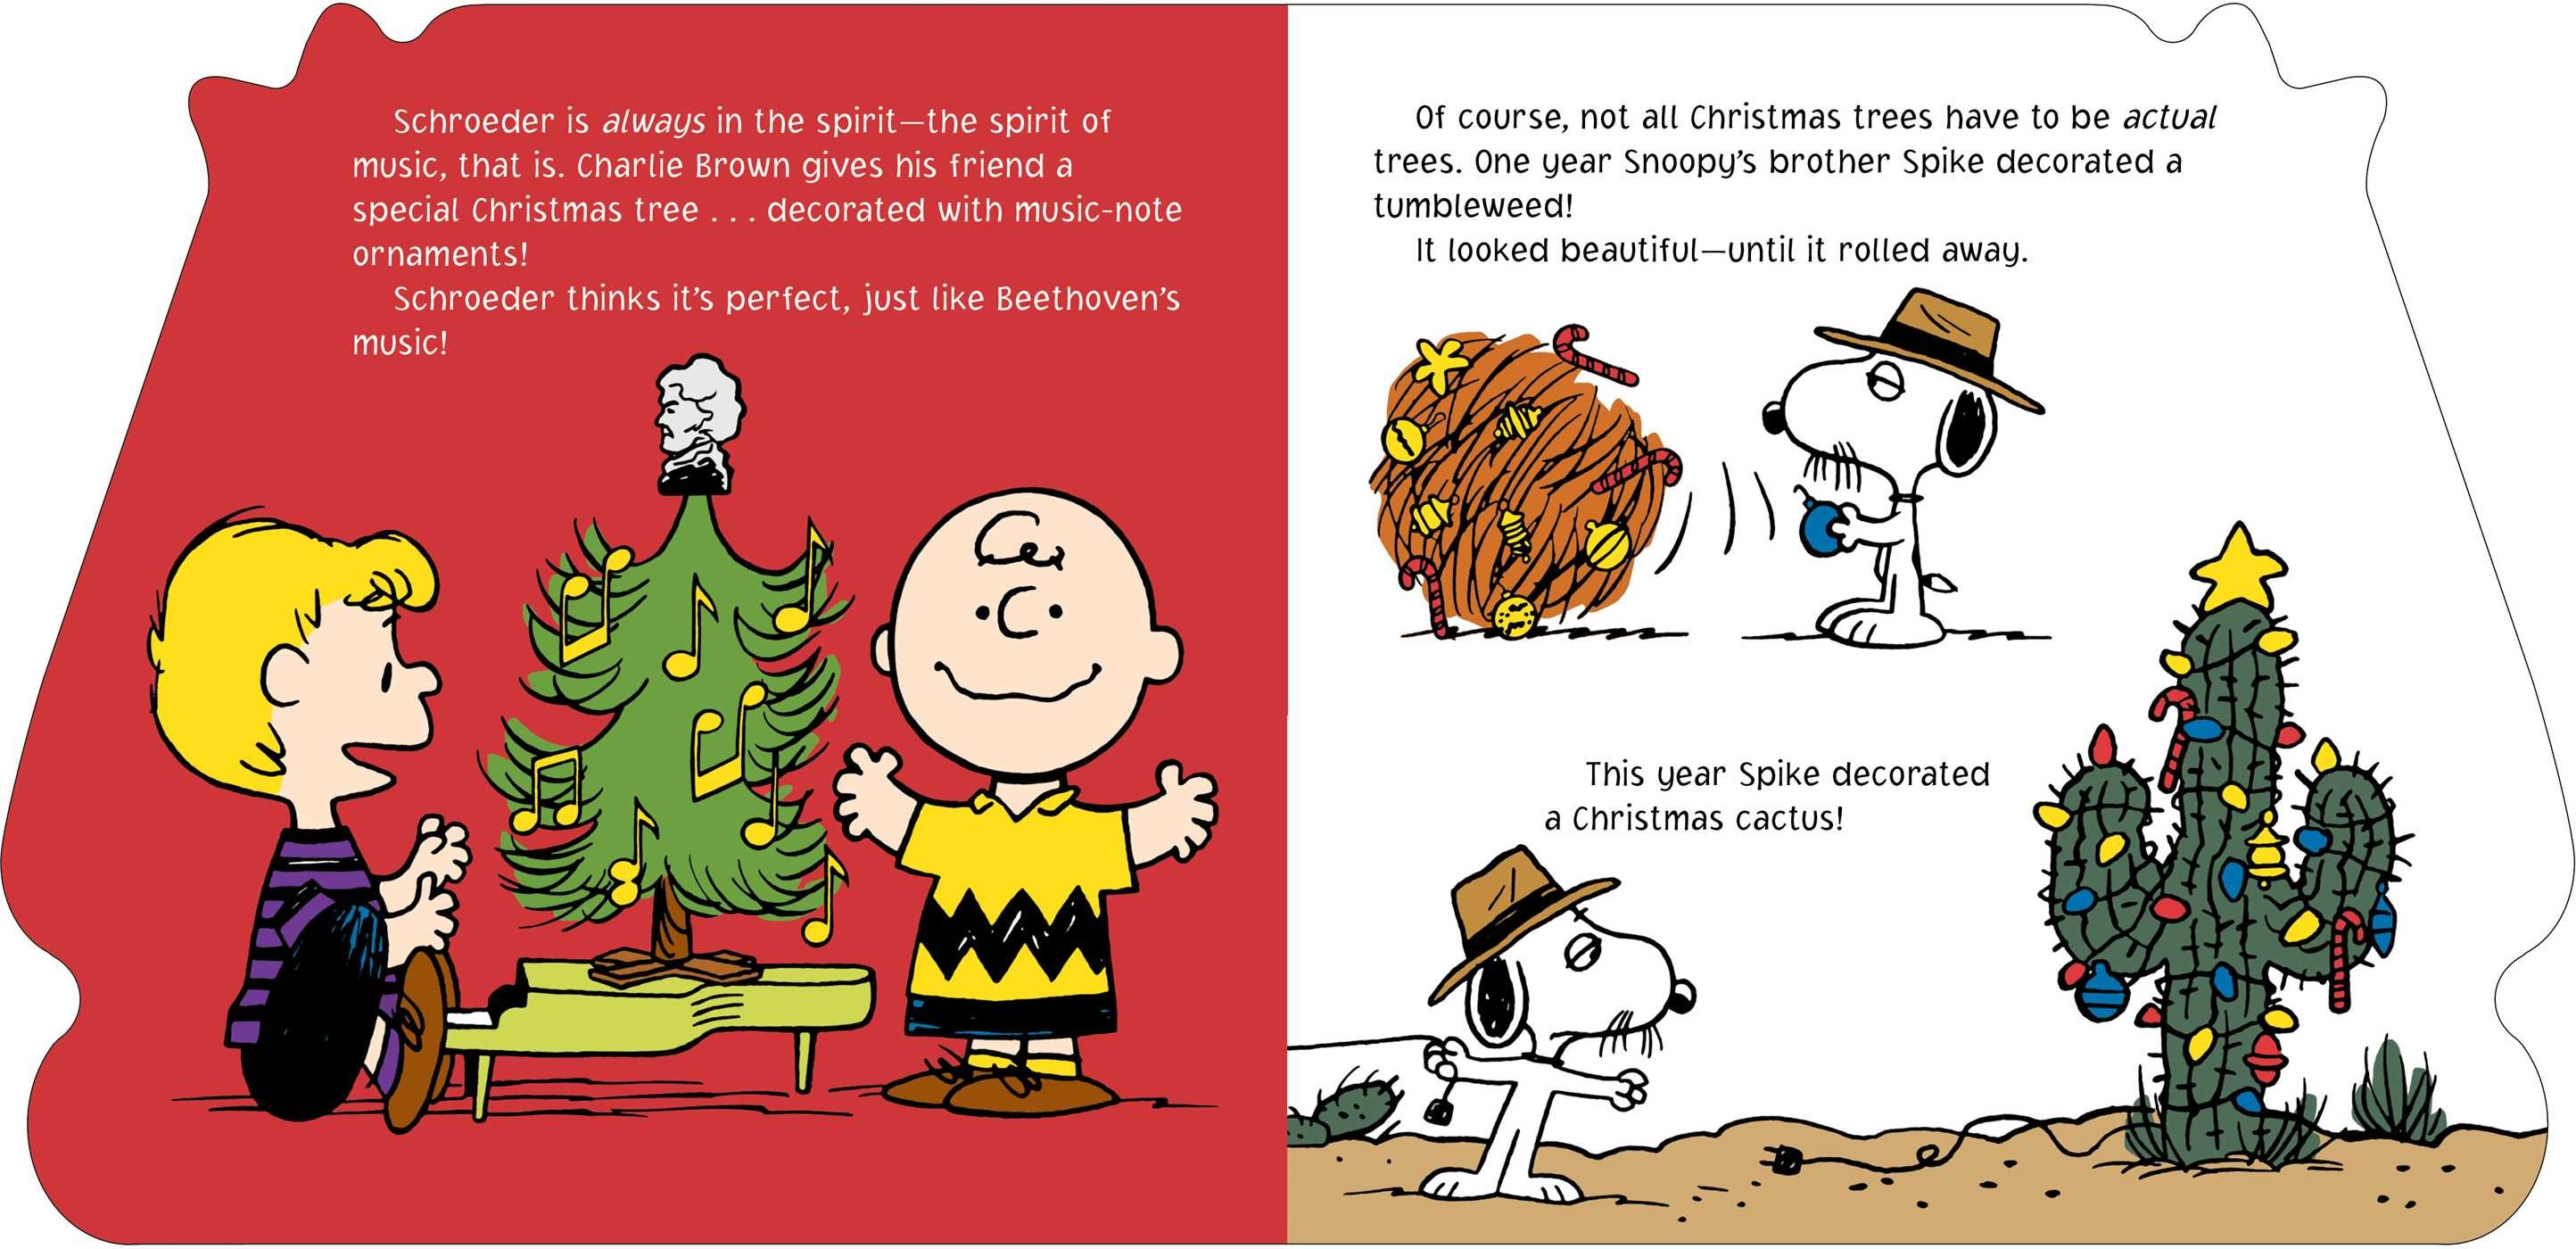 Snoopy Merry Christmas Images.Merry Christmas Charlie Brown Book By Charles M Schulz Cala